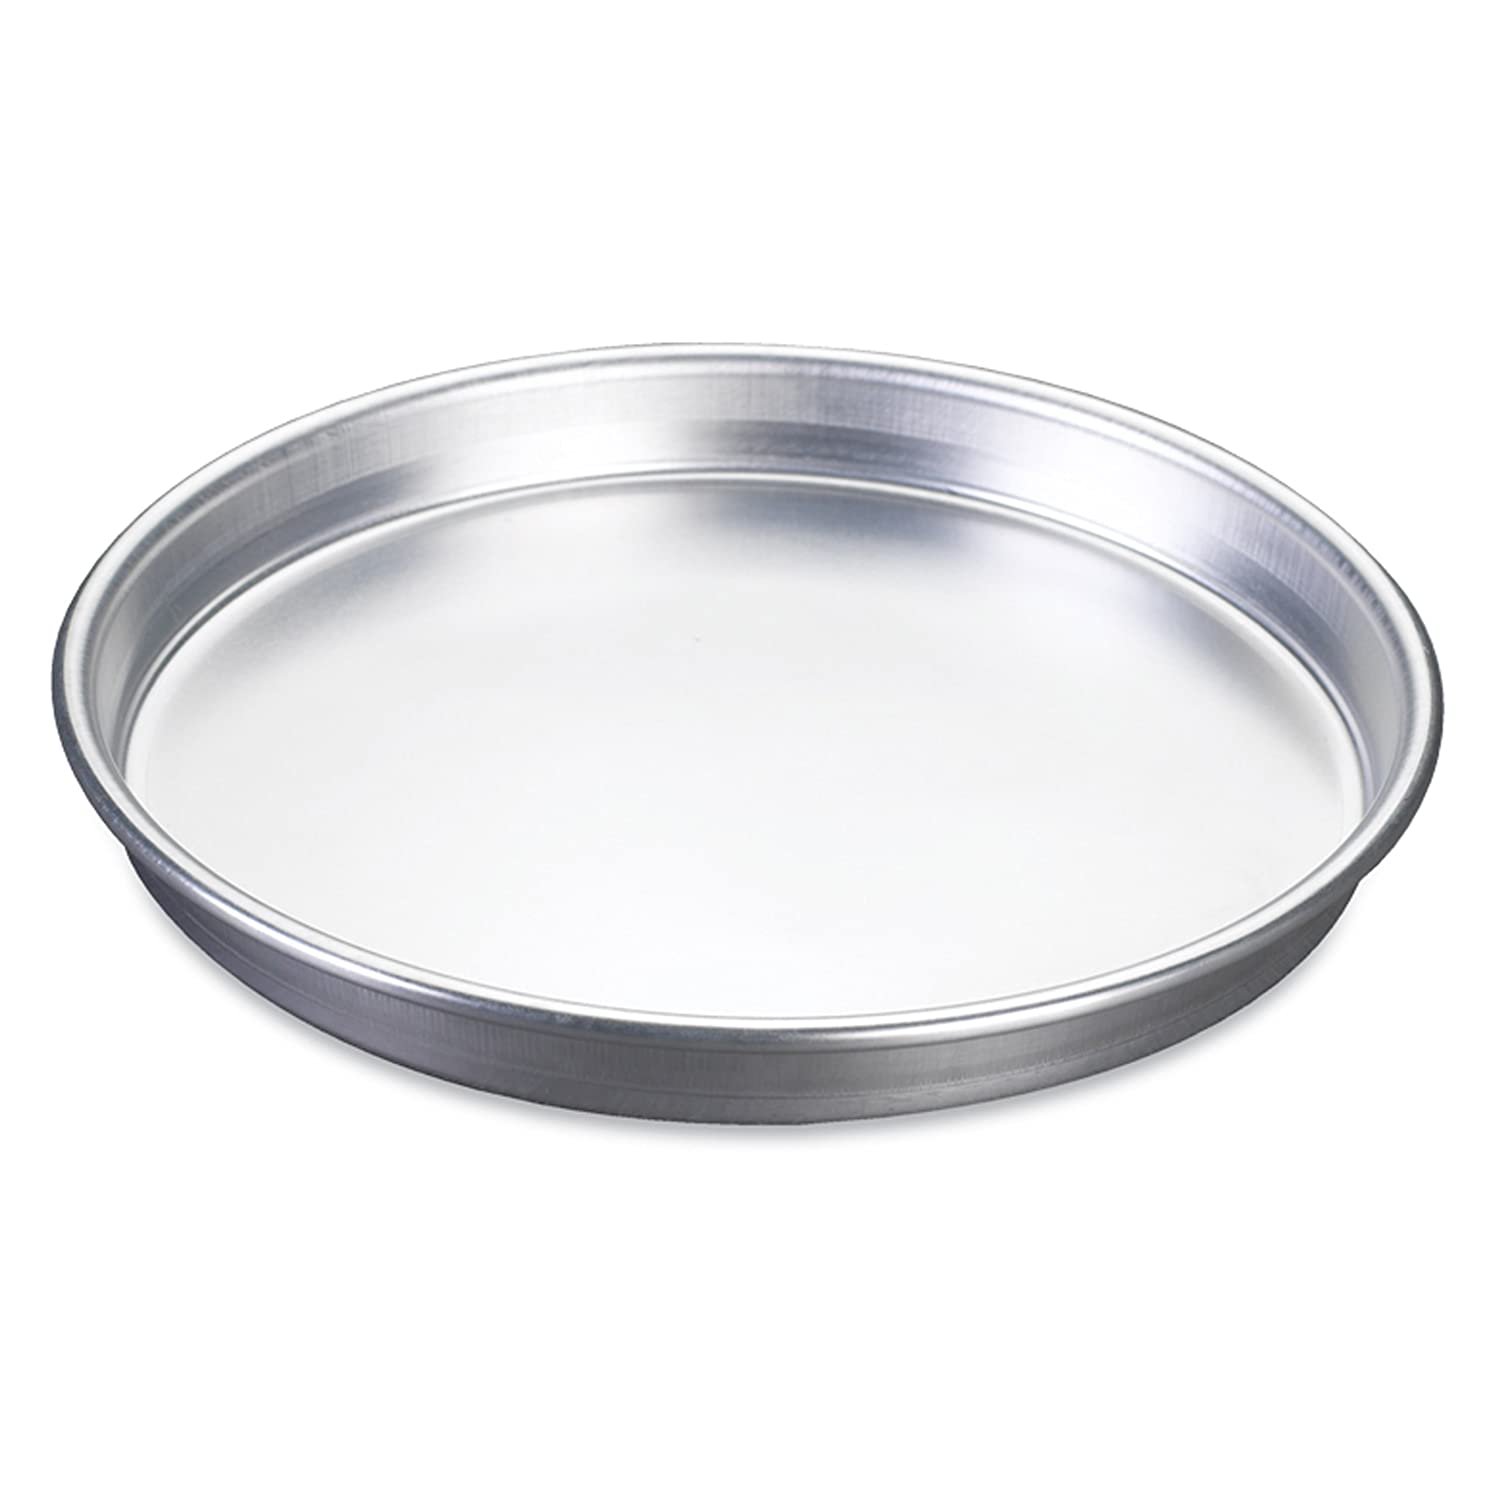 Nordic Ware Deep Dish Pizza Pan, 14-Inch by 2-Inch 46500AMZ